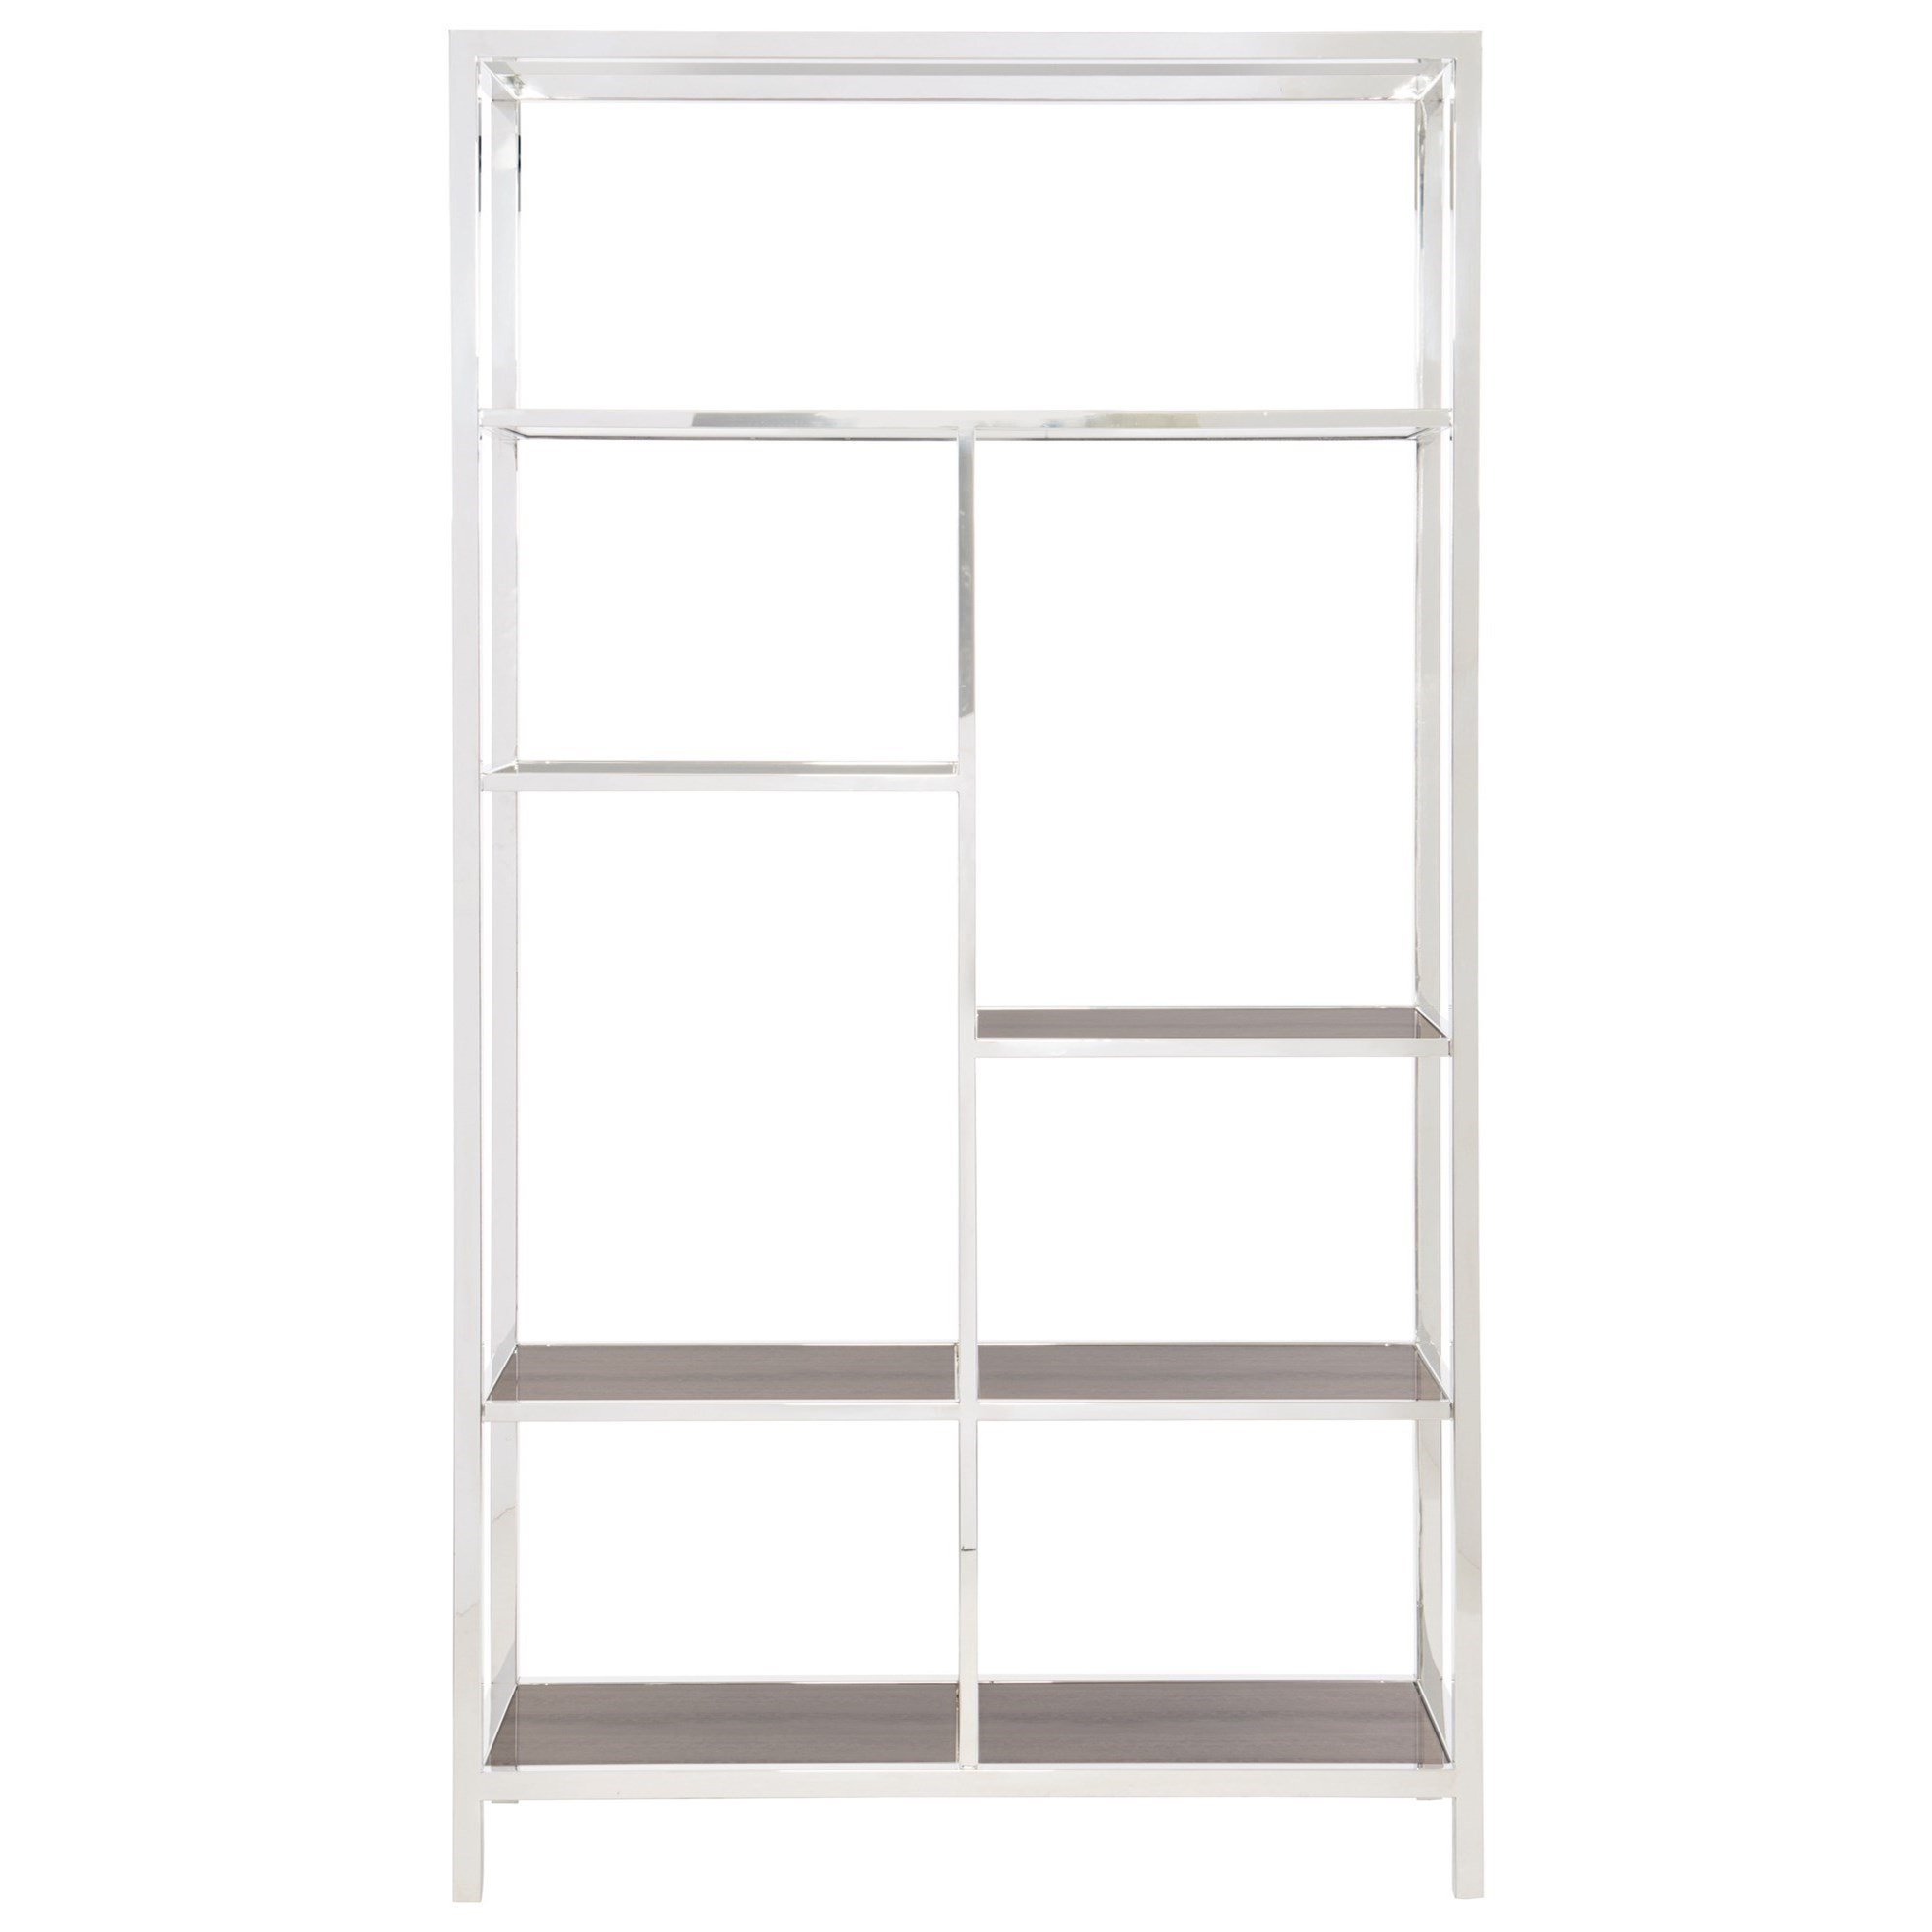 Etagere Metal Halton Metal Etagere With Stone Grain Tempered Glass By Bernhardt At Dunk Bright Furniture